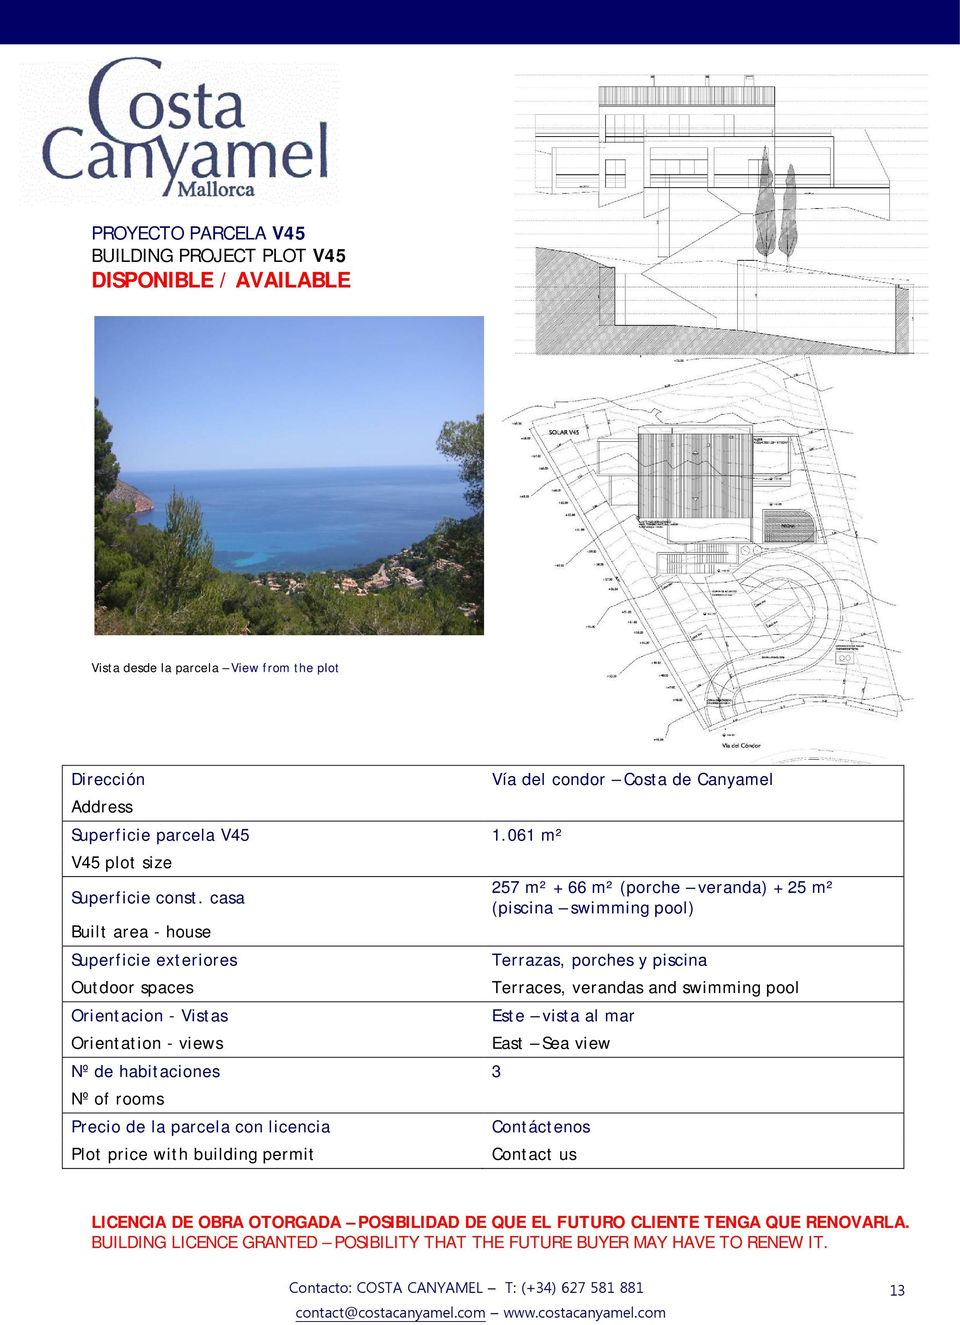 casa 257 m² + 66 m² (porche veranda) + 25 m² (piscina swimming pool) Nº de habitaciones 3 Nº of rooms LICENCIA DE